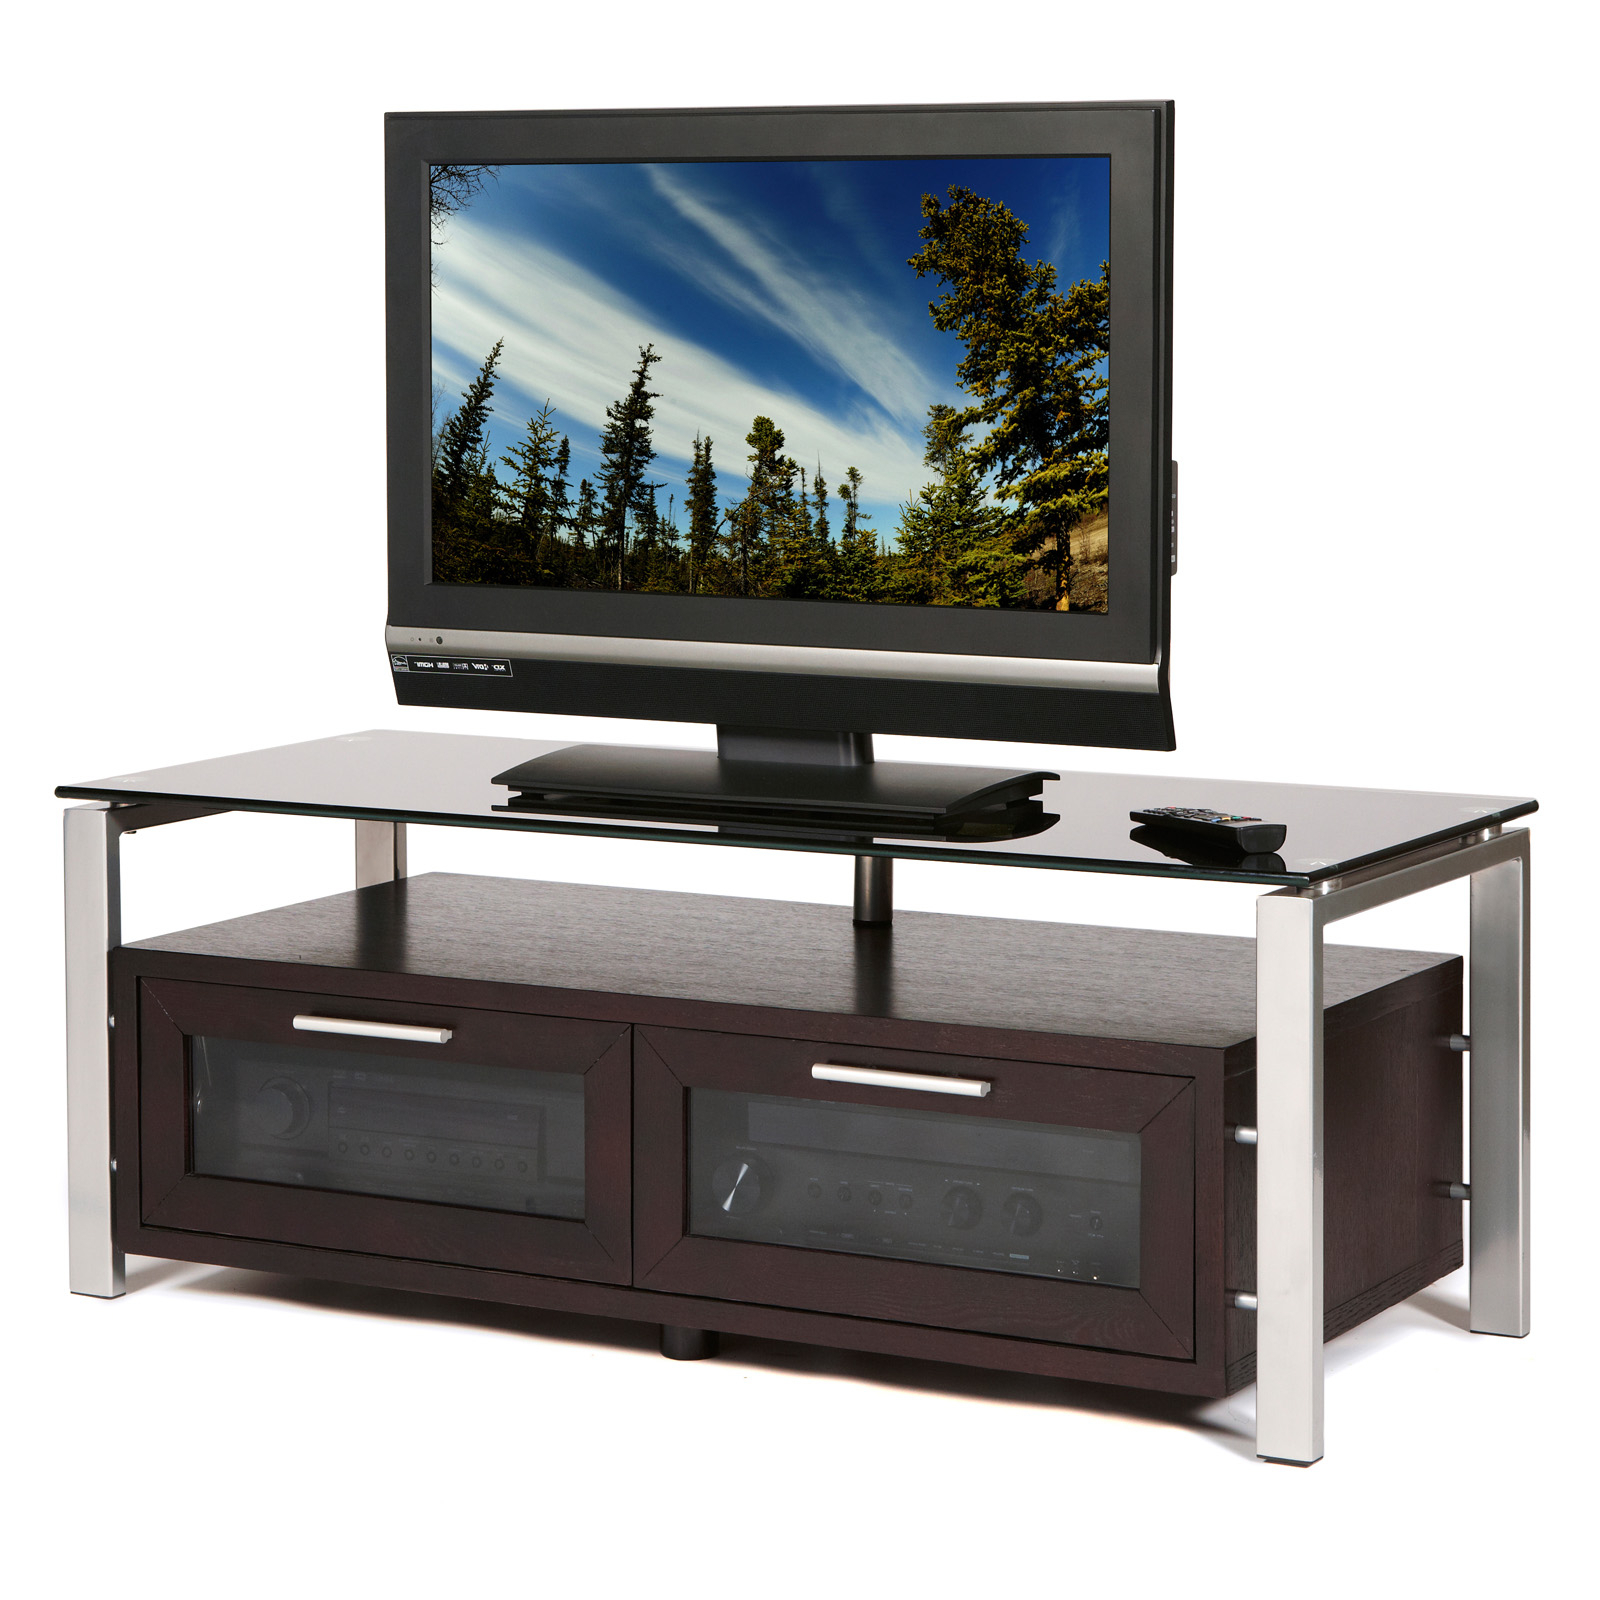 Plateau Decor 50 Inch Tv Stand In Espresso/black And With Regard To Tv Stands Fwith Tv Mount Silver/black (View 2 of 20)